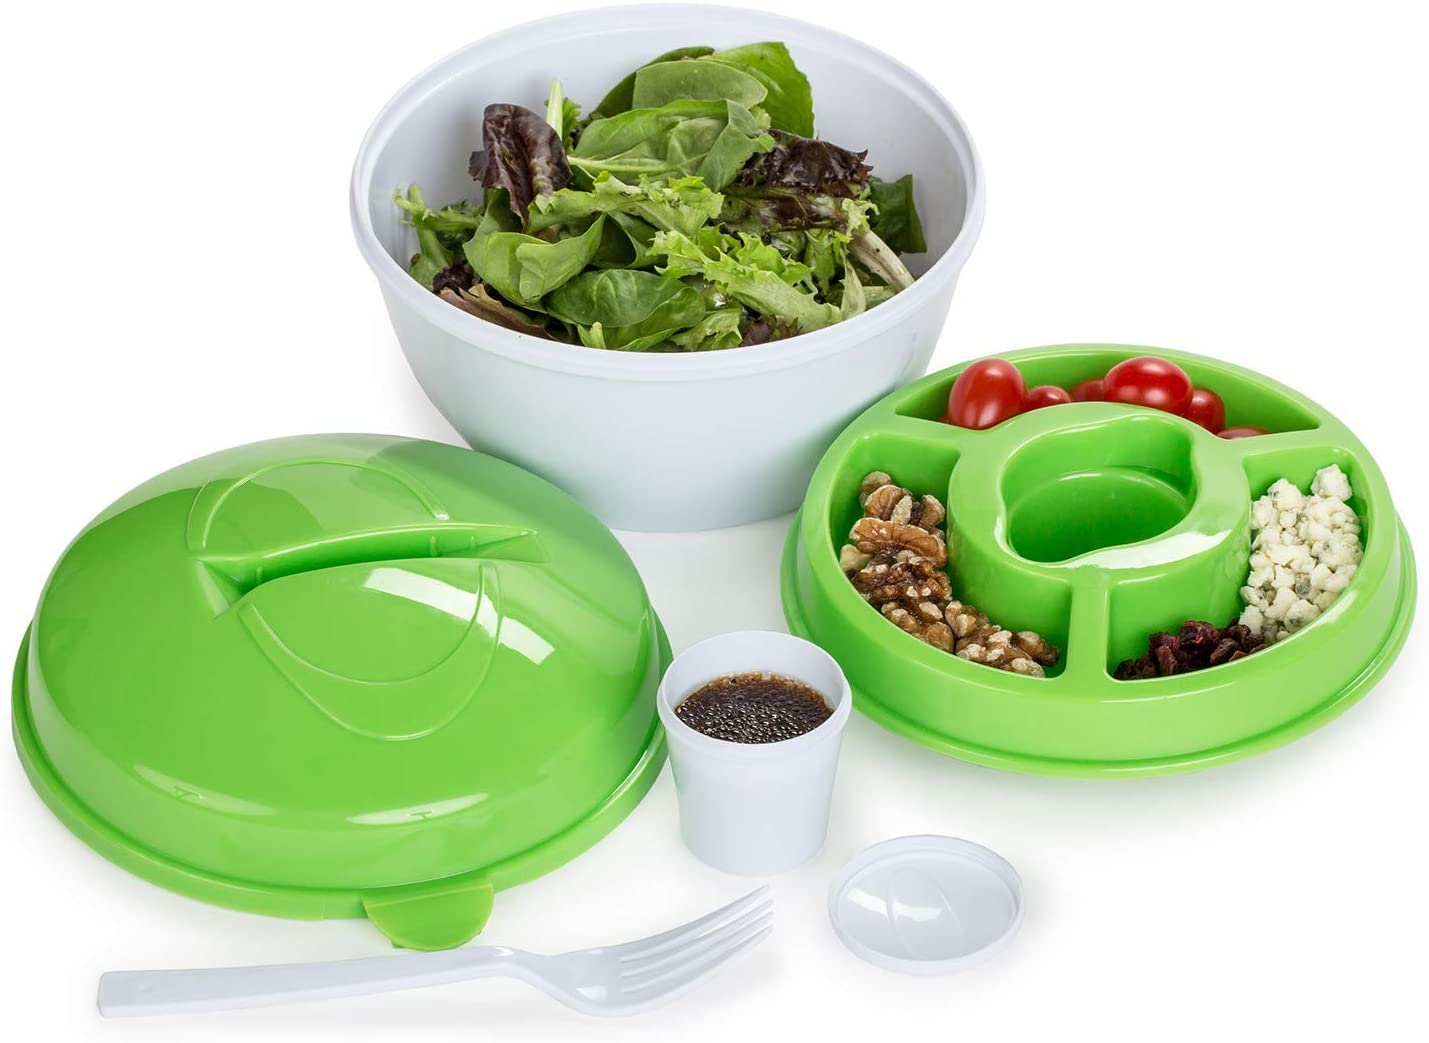 All in One Salad To-Go Container - Portable & Airtight Canister with Dressing Compartment, Multiple Top Storage & Attachable Fork